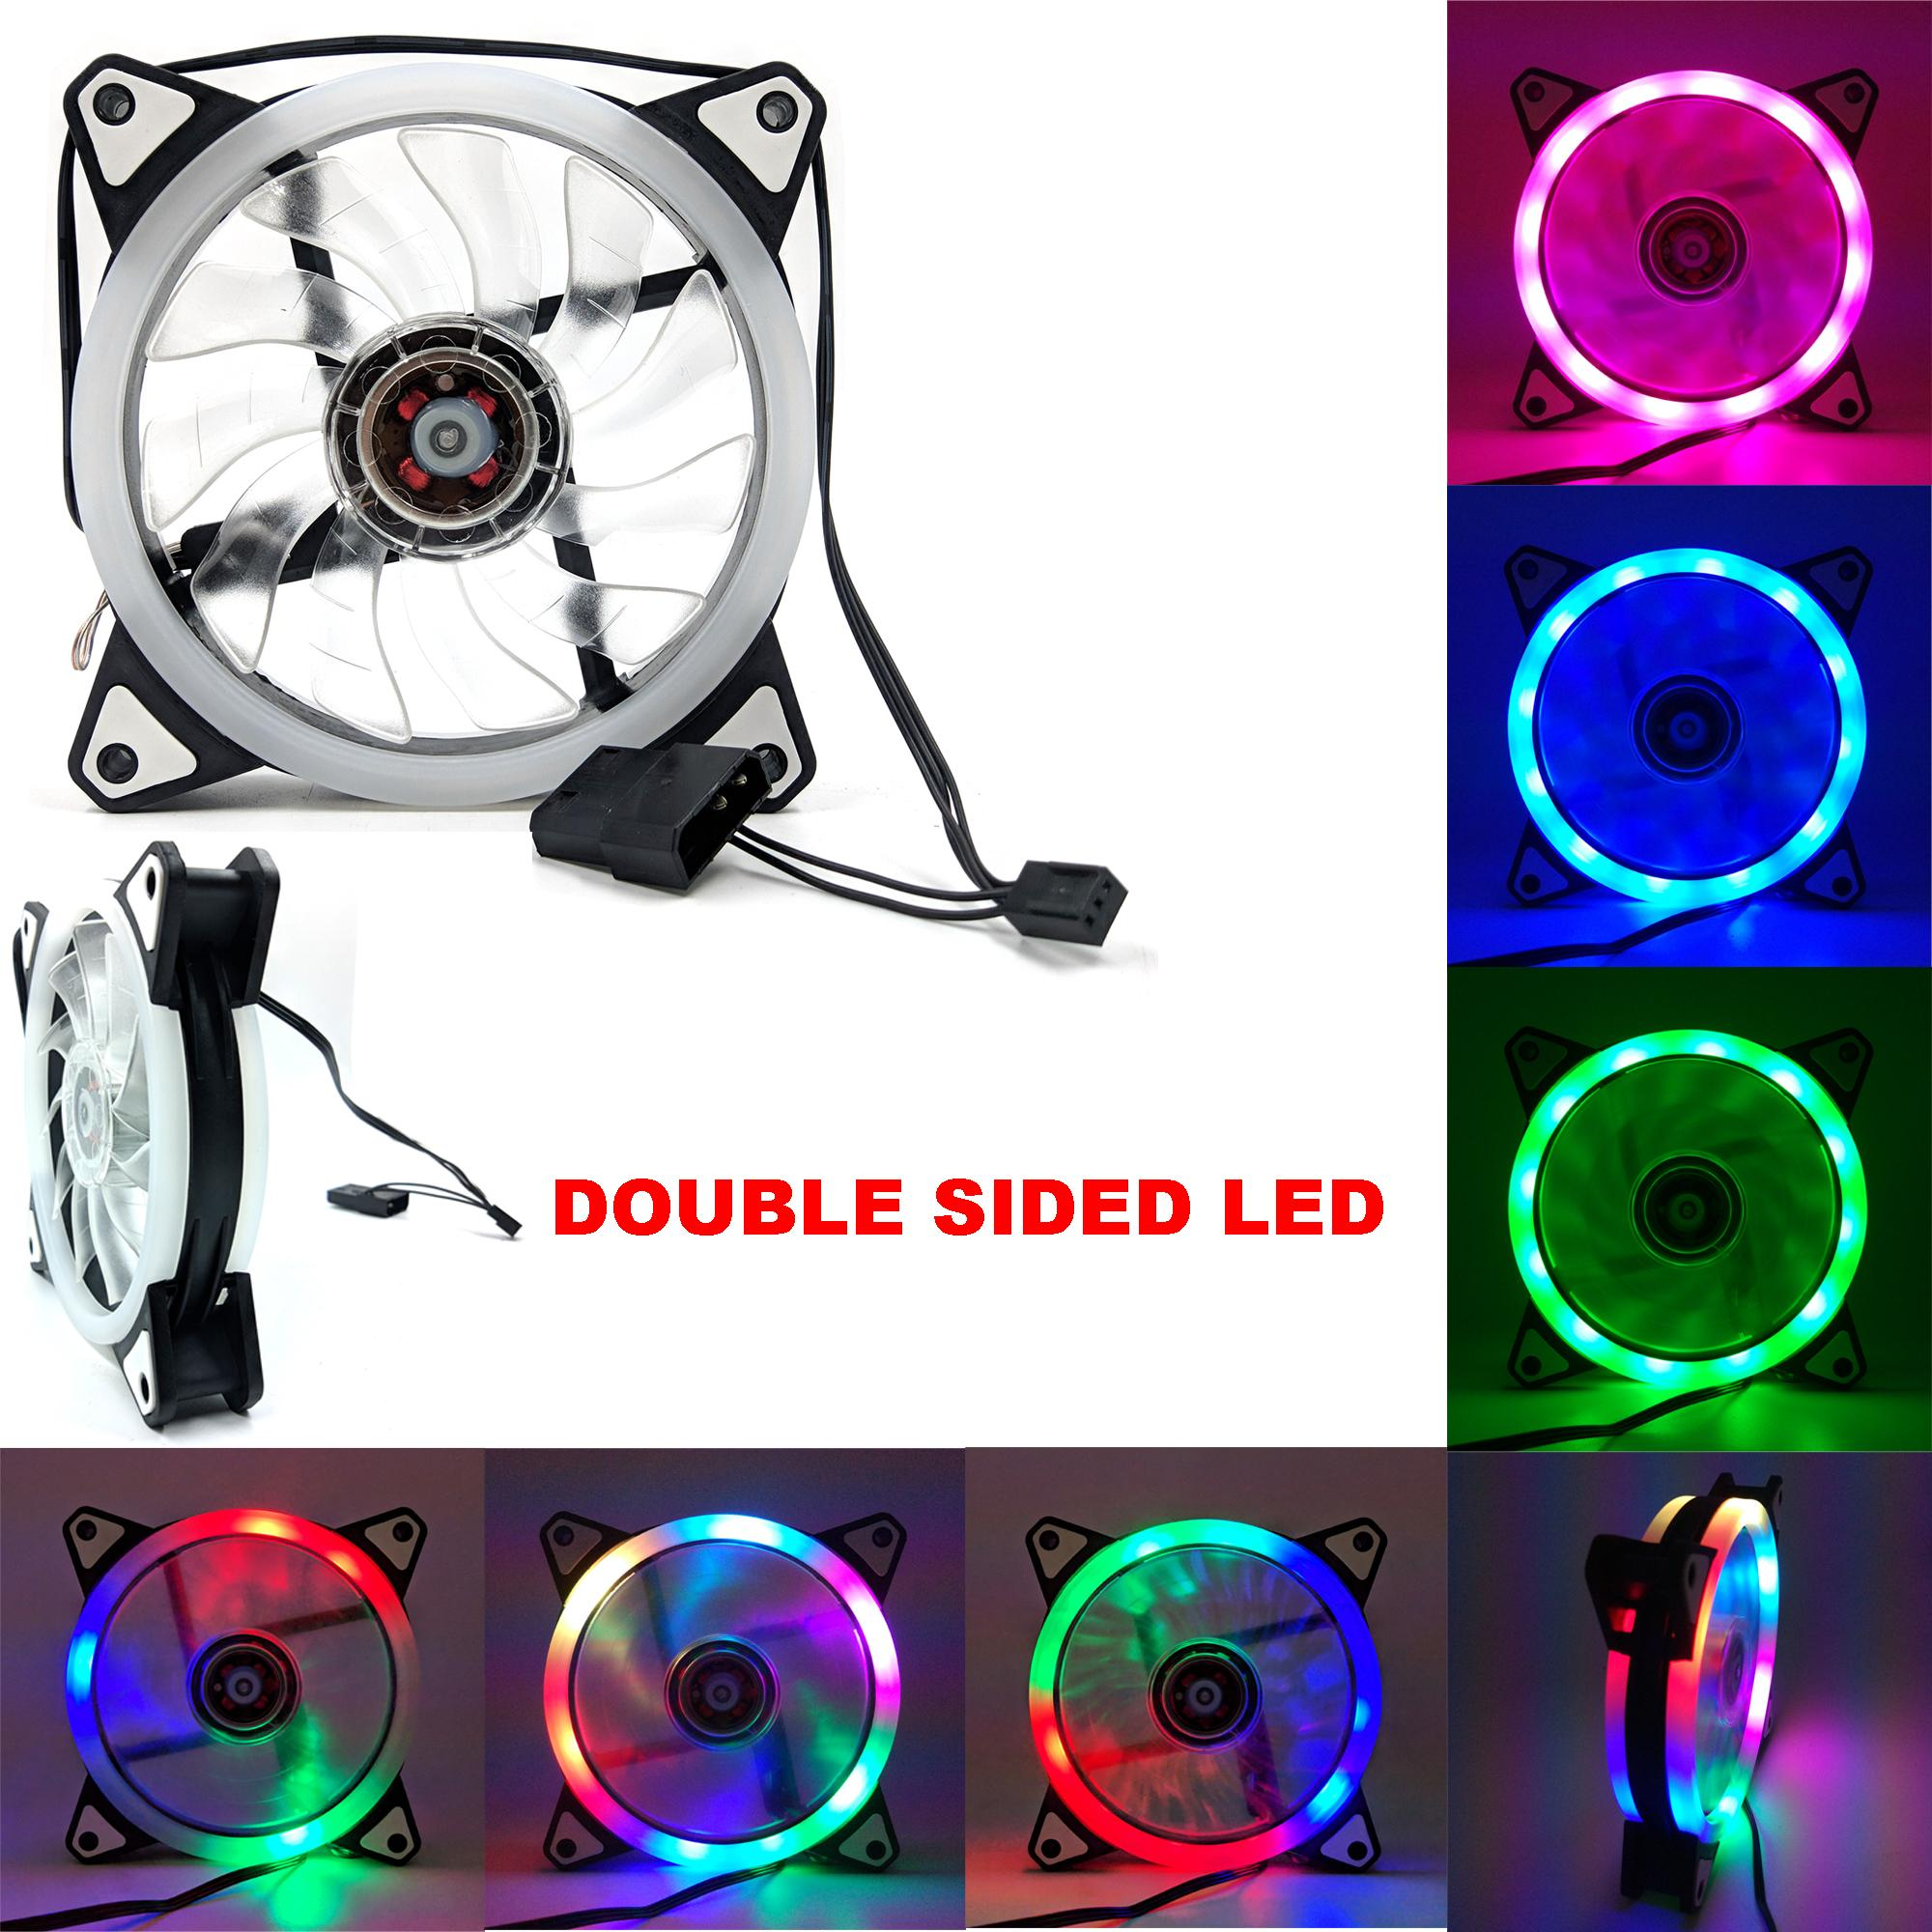 120mm Double Sided Rgb Running Led Cooling Fan 366 Automatic Switching Modes By Jungletec.